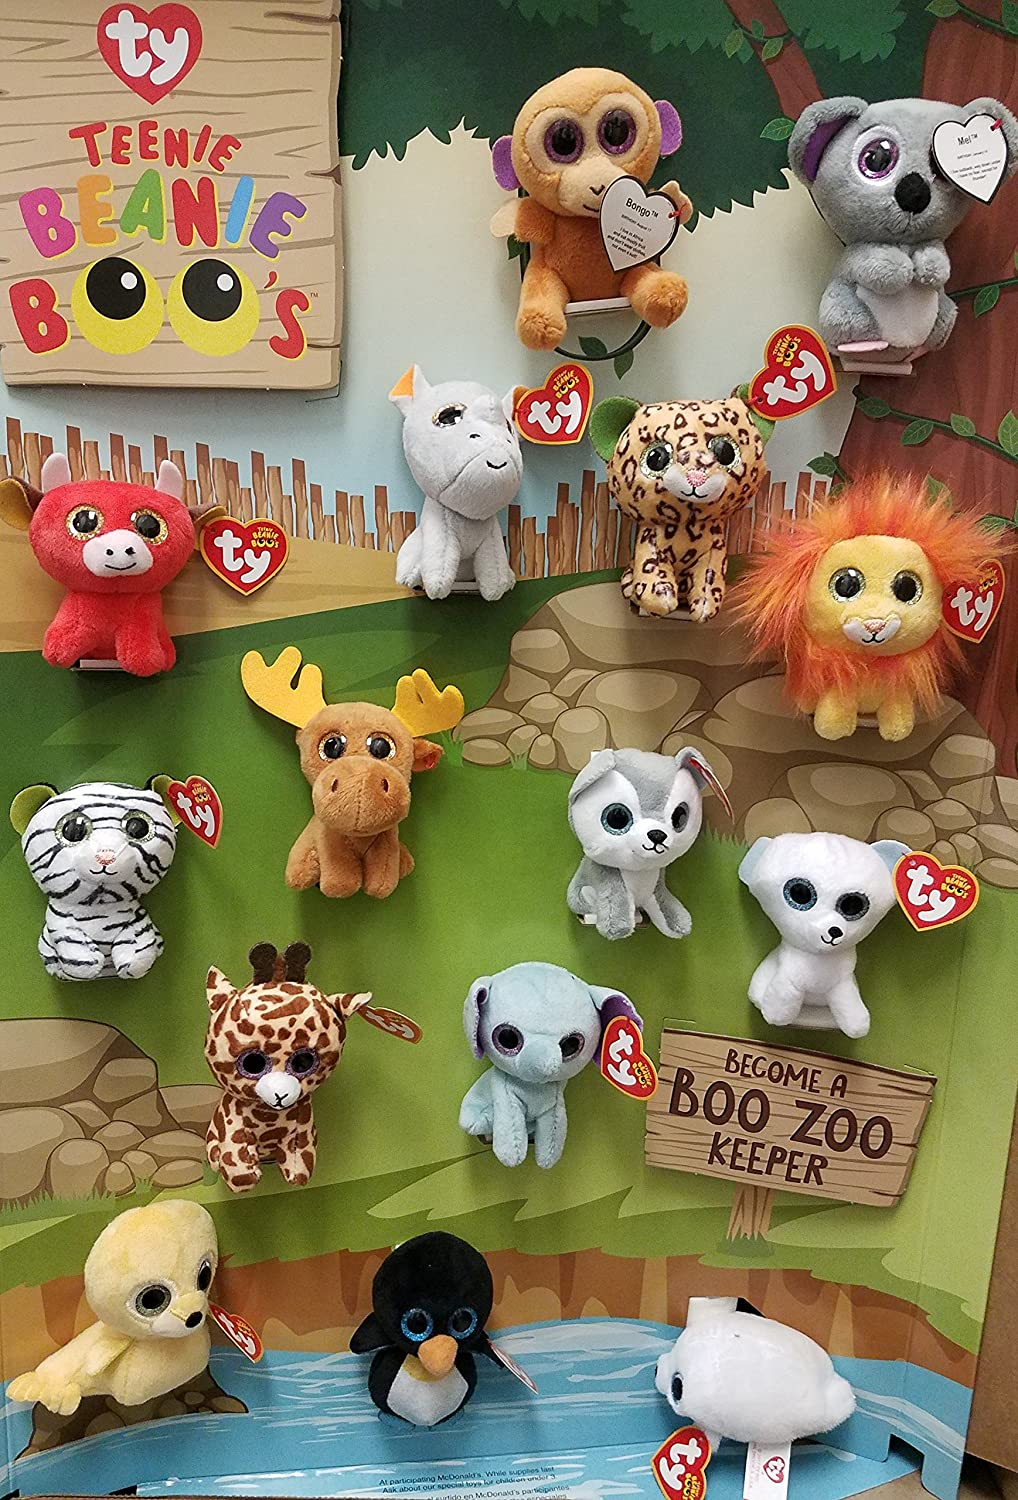 a48fd81eee3 Amazon.com  Mcdonalds 2017 TEENIE BEANIE BOOS - COMPLETE SET OF 15  Toys    Games